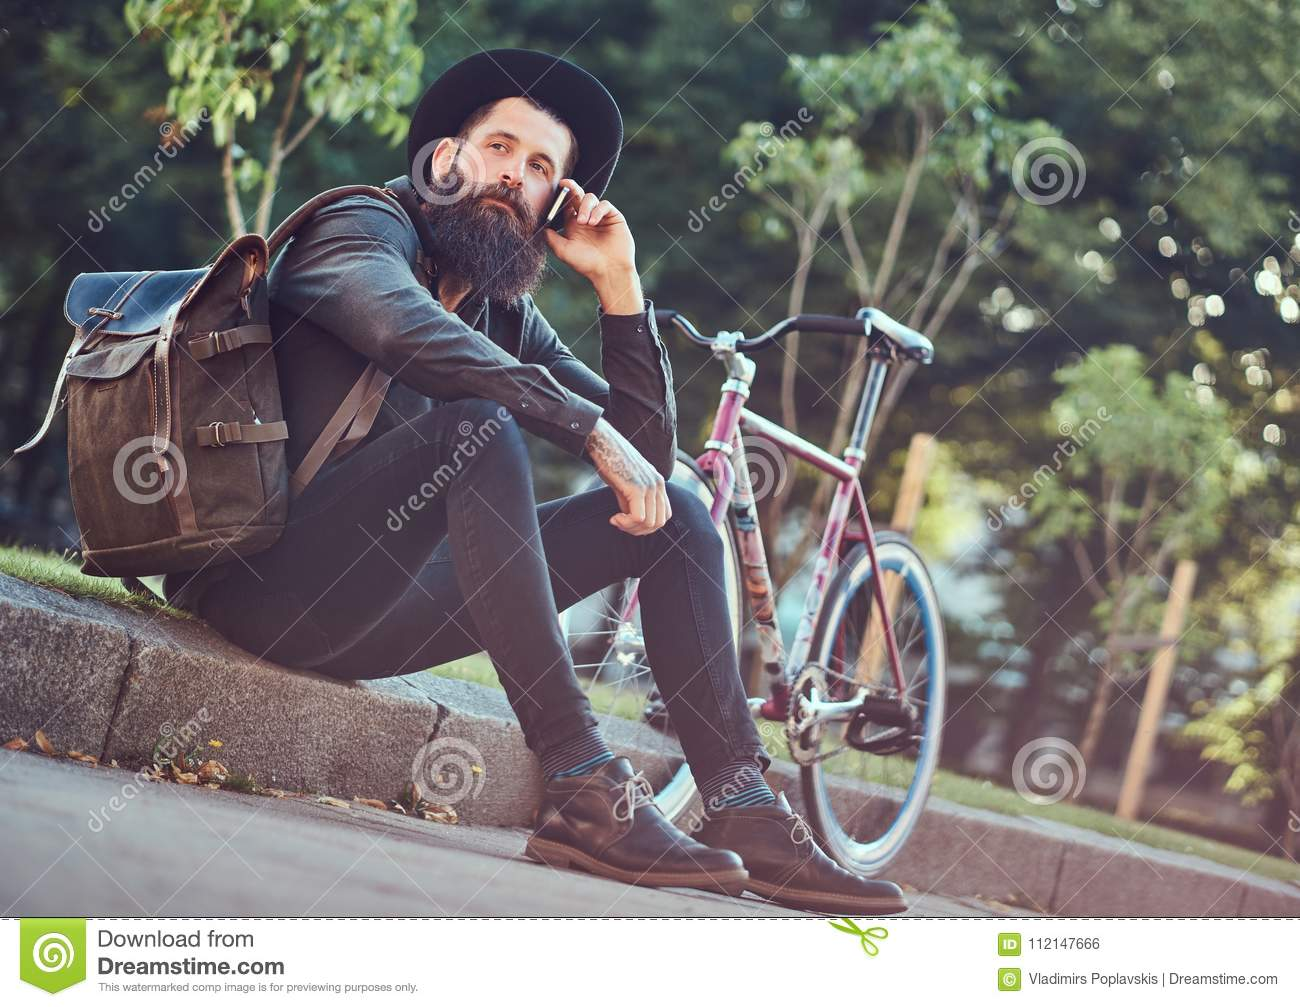 A handsome hipster traveler with a stylish beard and tattoo on his arms dressed in casual clothes and hat with a bag